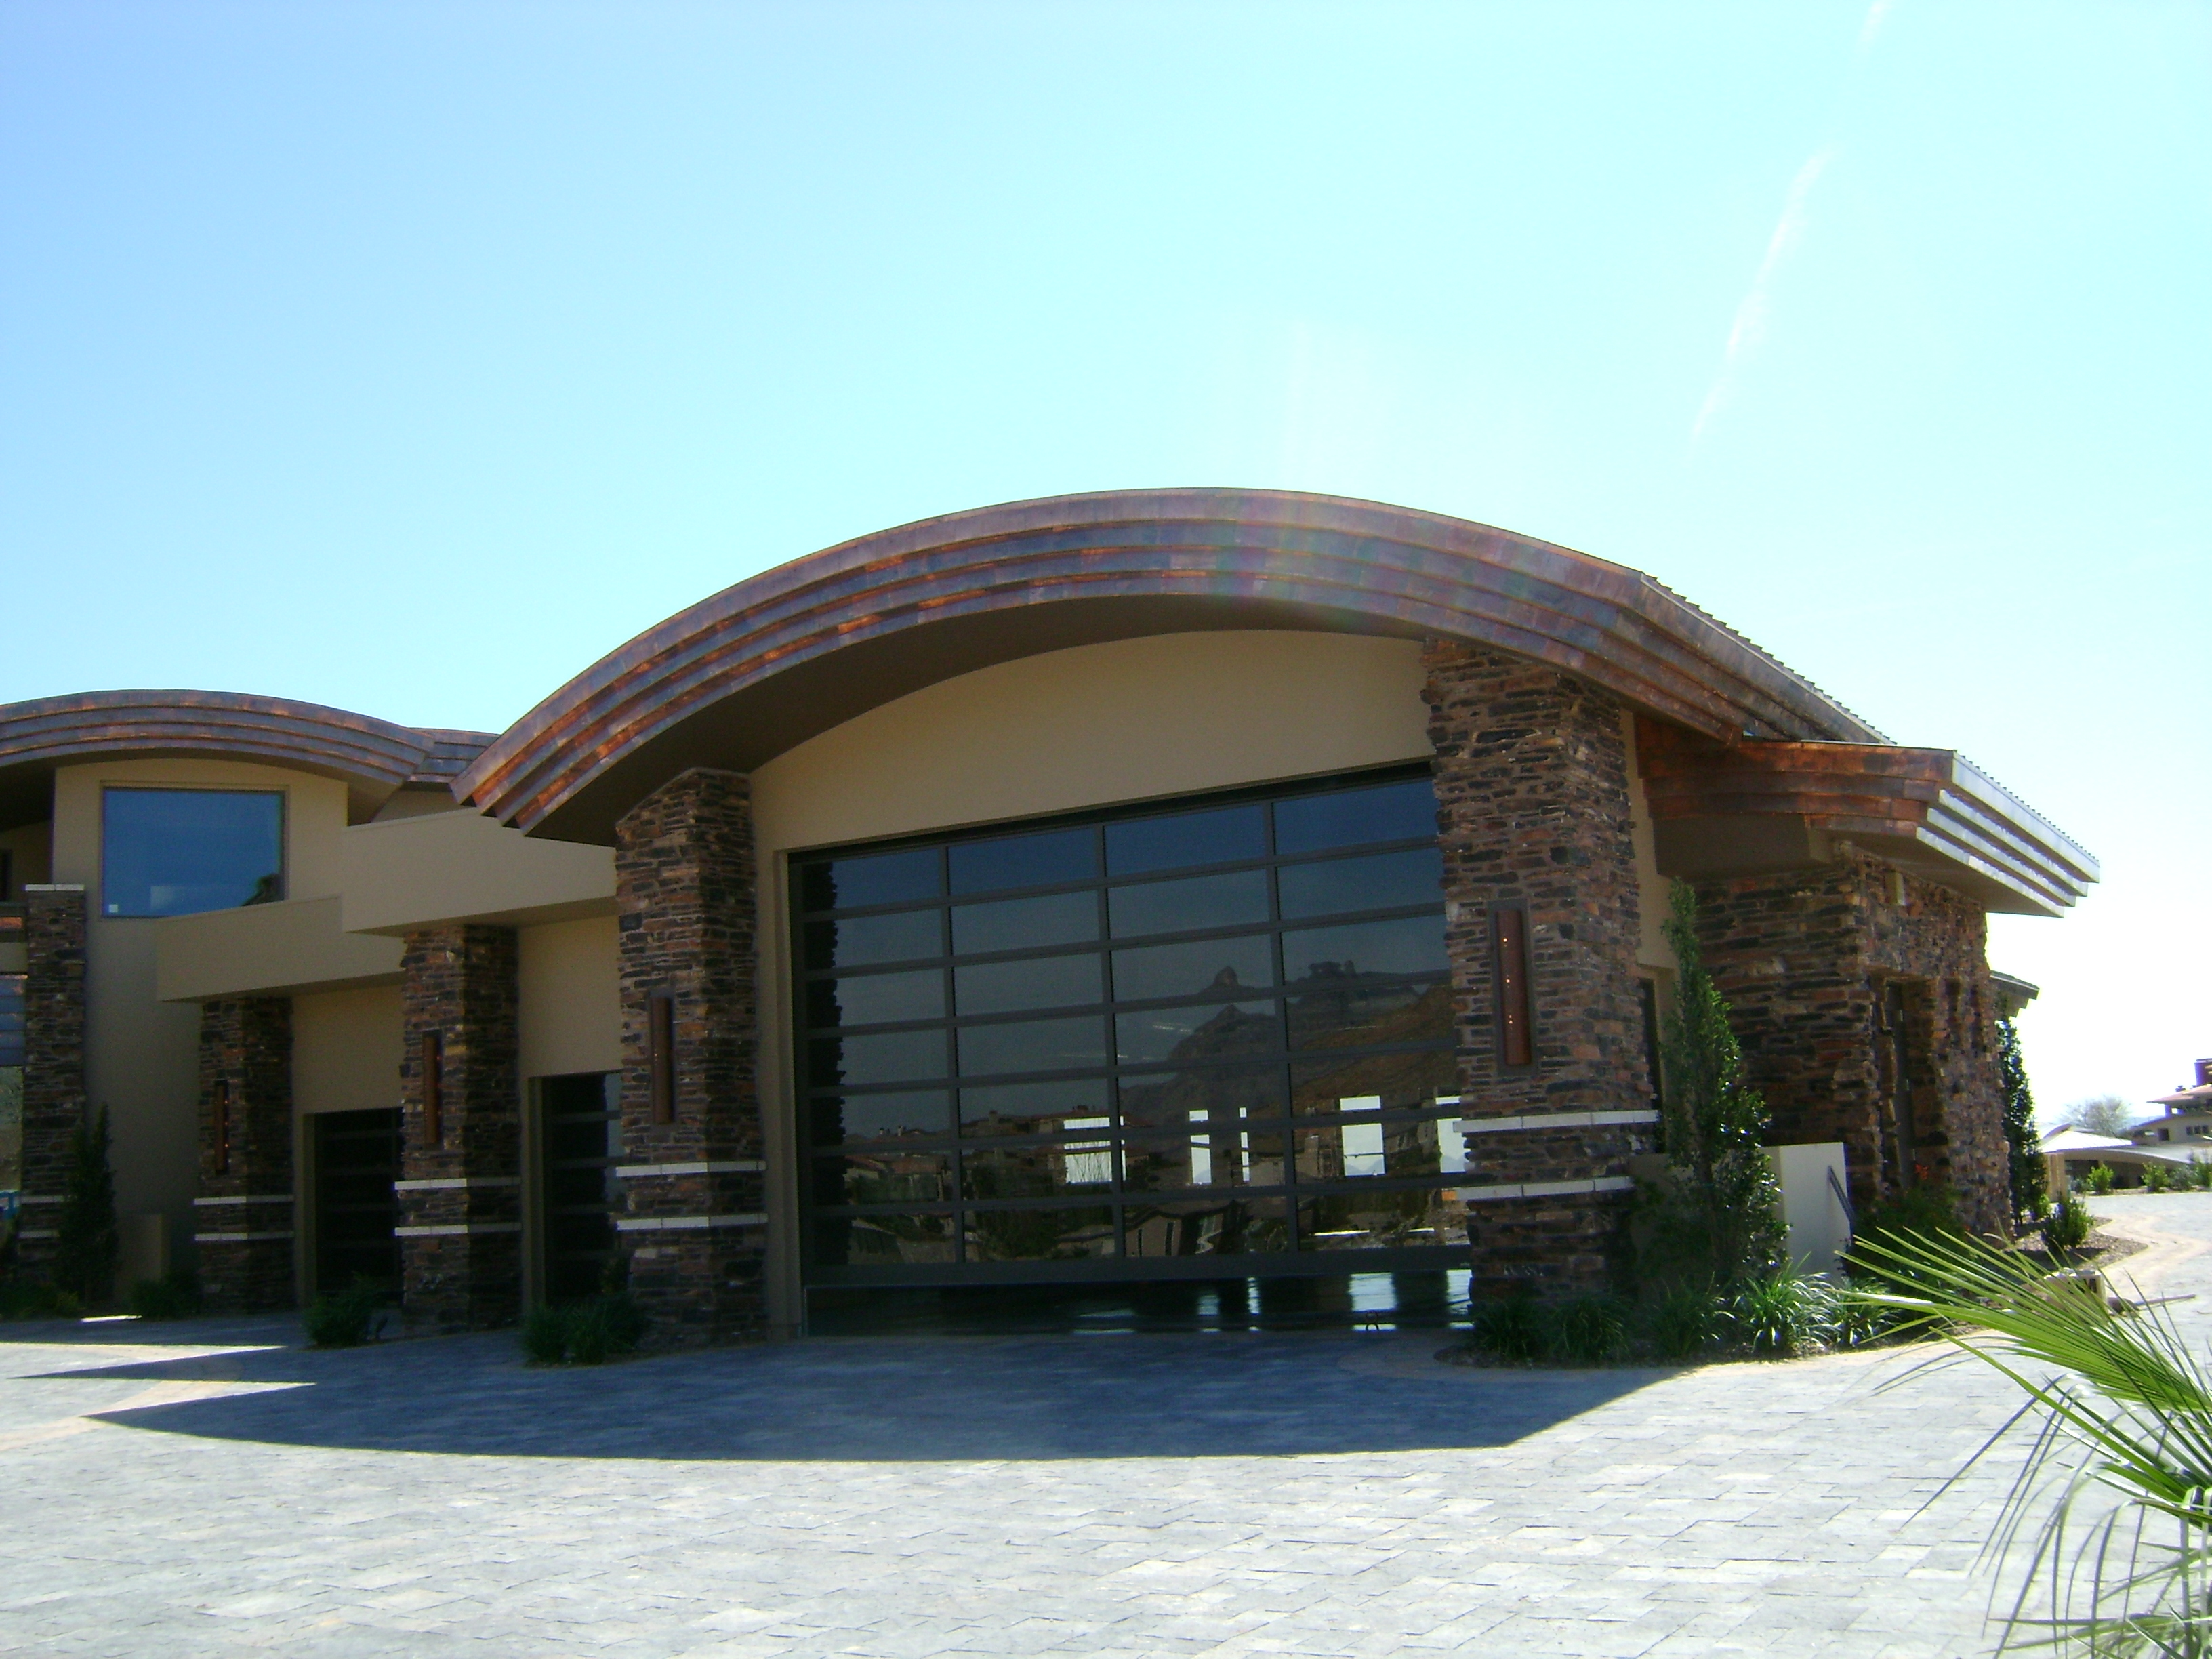 Customer curved copper roofing on Las Vegas building